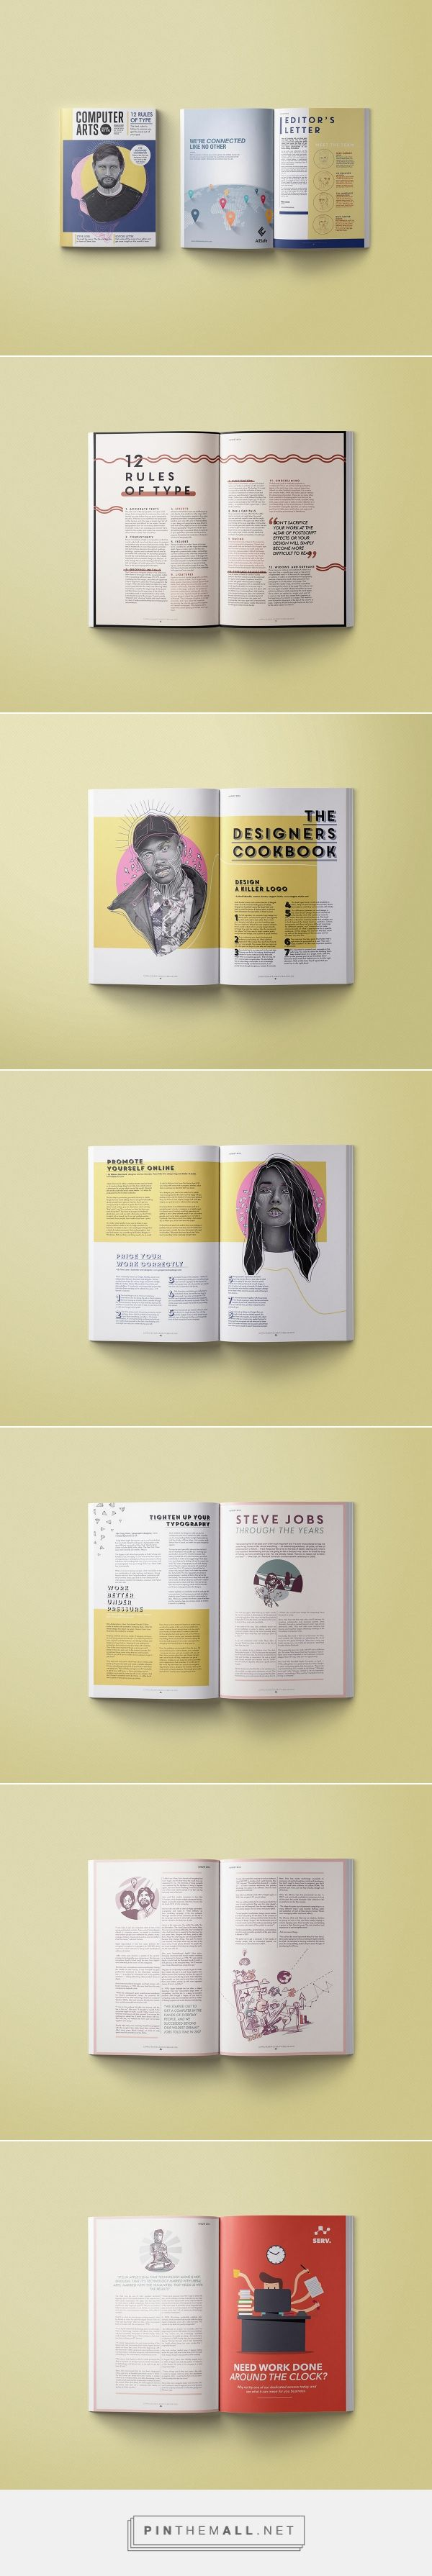 Computer Arts Magazine layout design by Jolanda van Rooyen